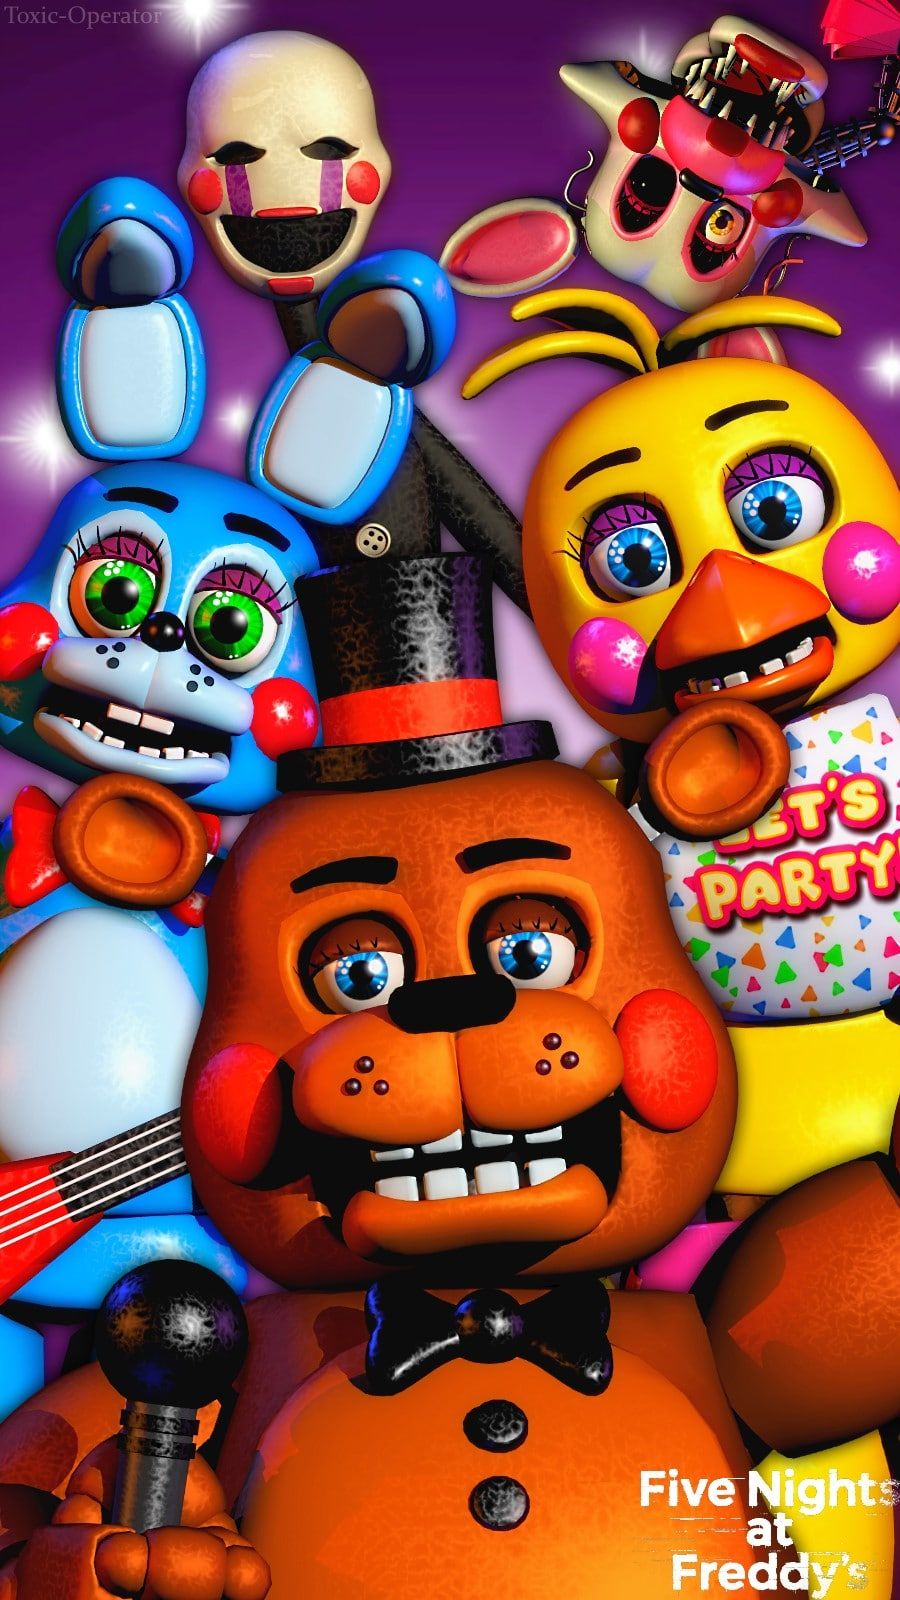 FNAF Wallpapers Android